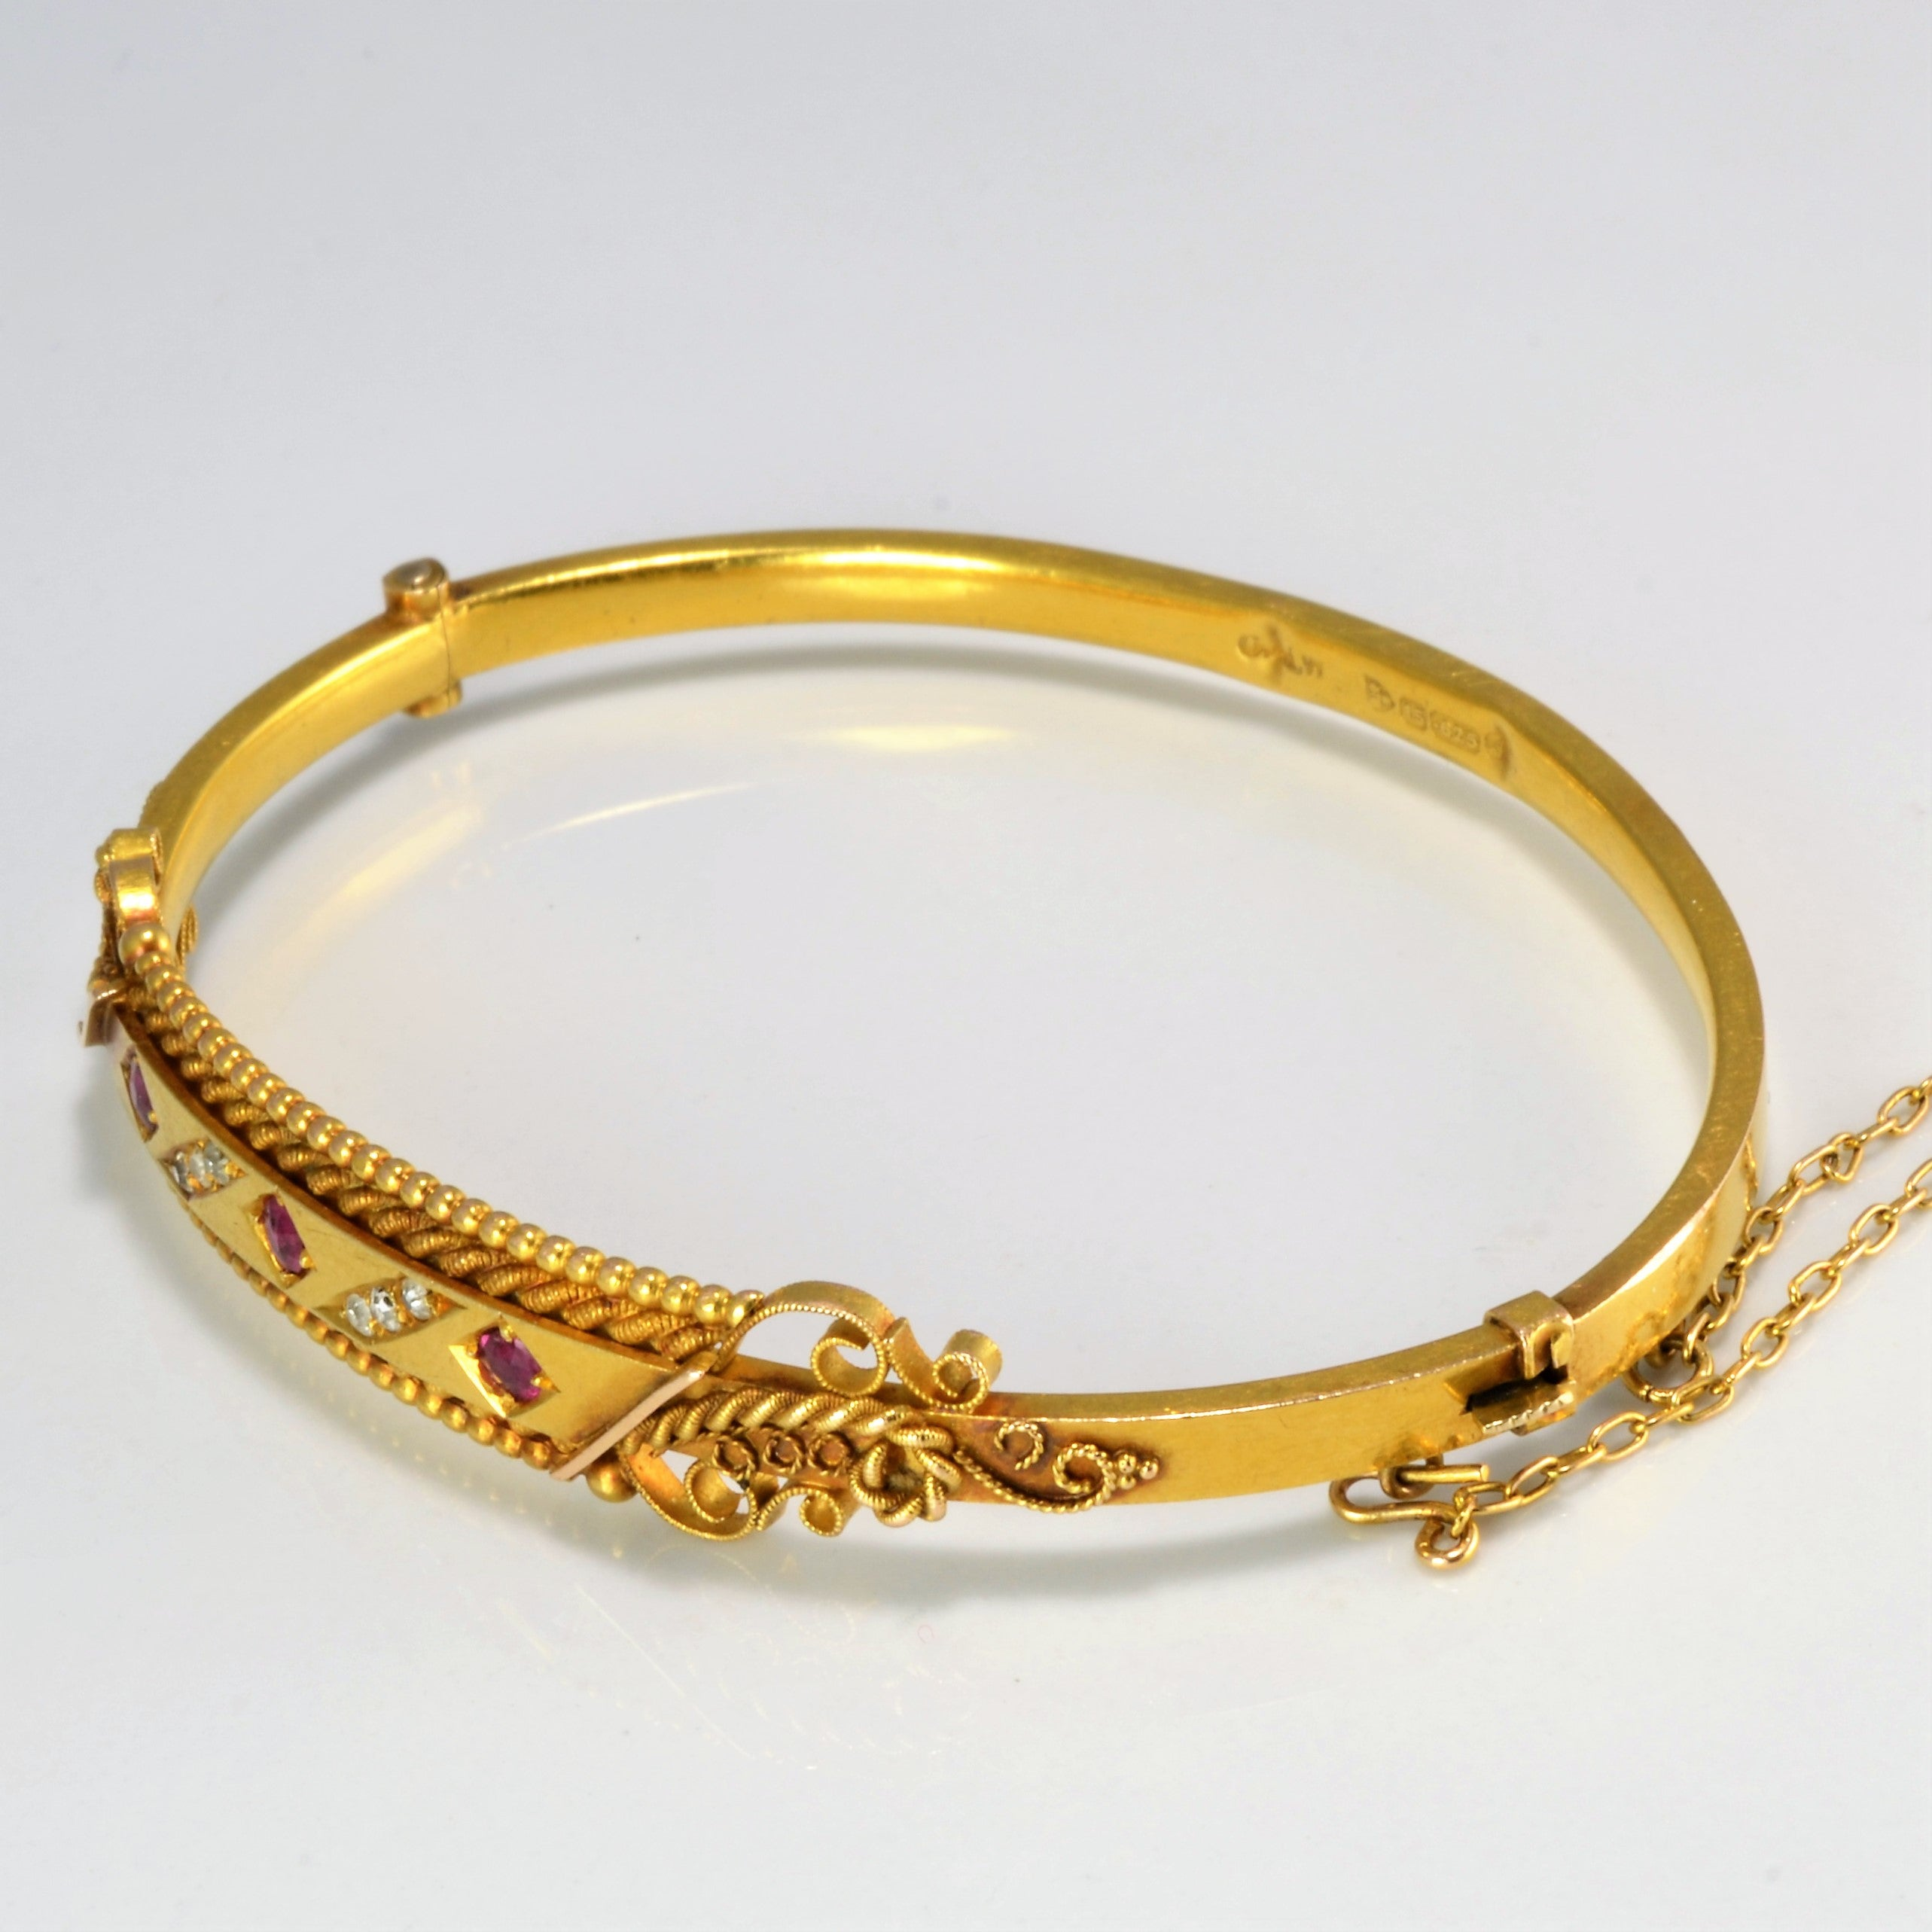 free product fremada bangles double shipping watches jewelry overstock gold today inches bracelet bypass bangle yellow